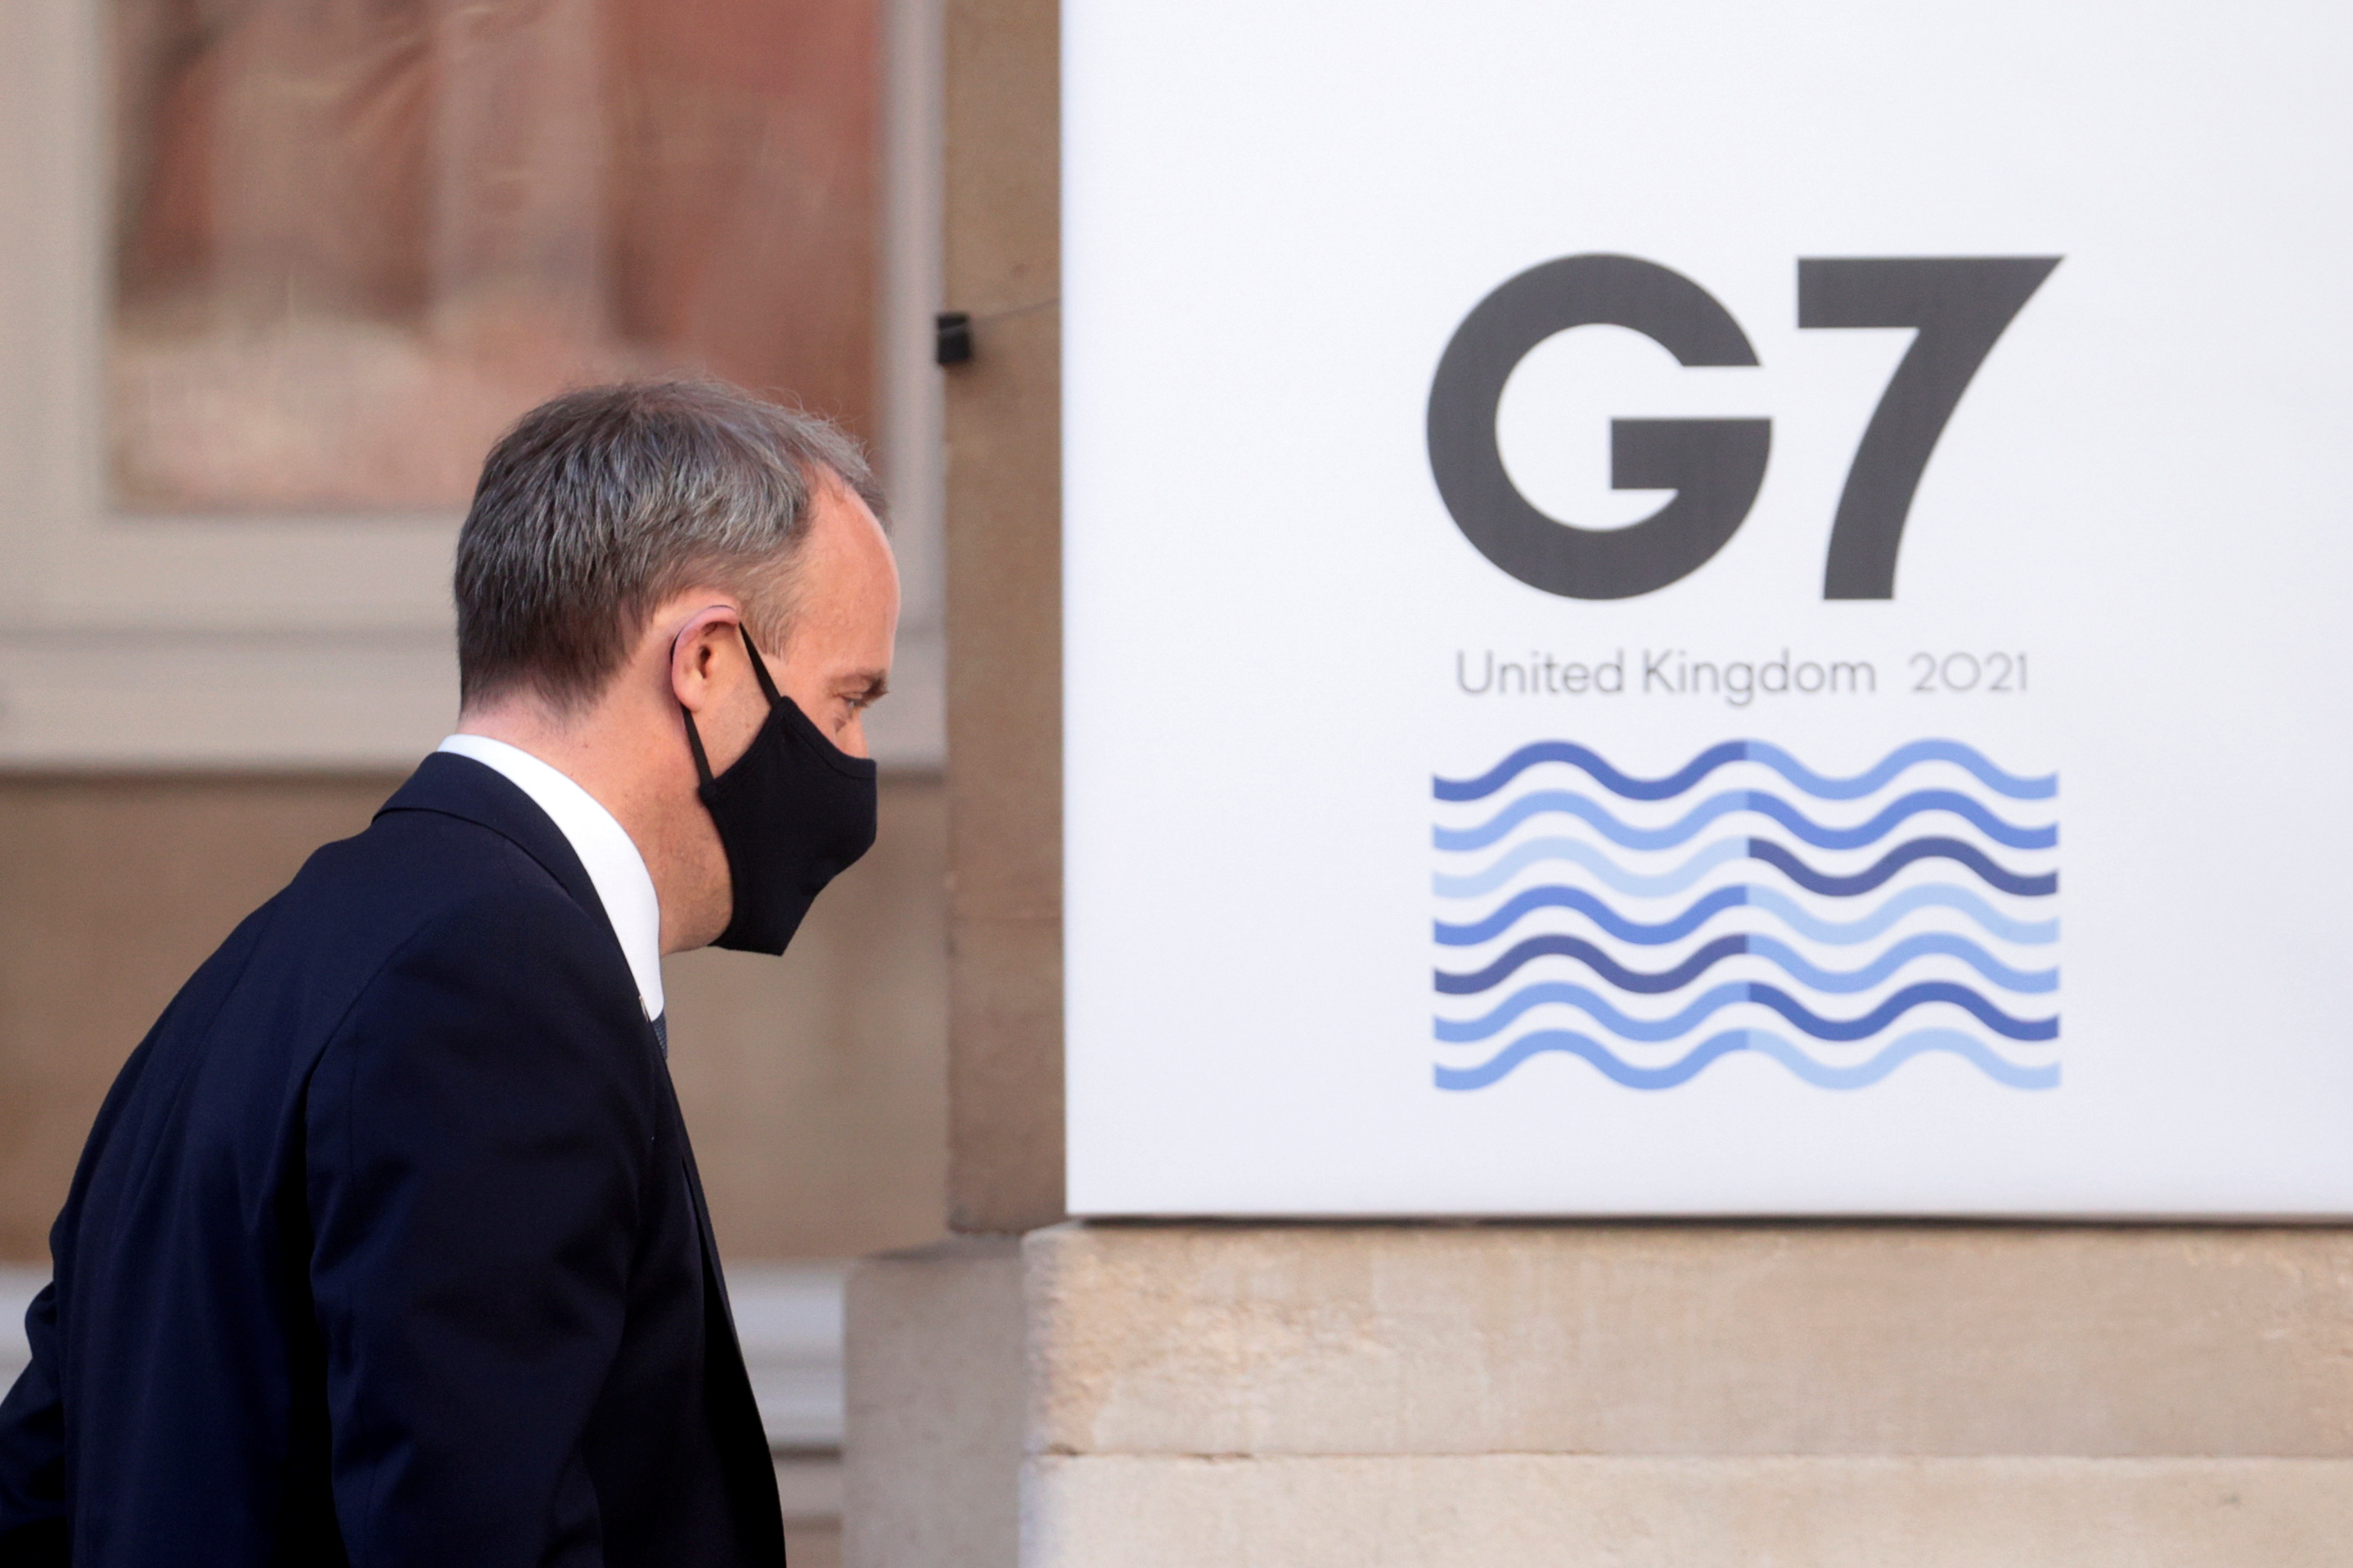 Britain's Foreign Secretary Dominic Raab arrives as G7 foreign ministers meet at Lancaster House in London, Britain, May 5, 2021. REUTERS/Hannah McKay/Pool